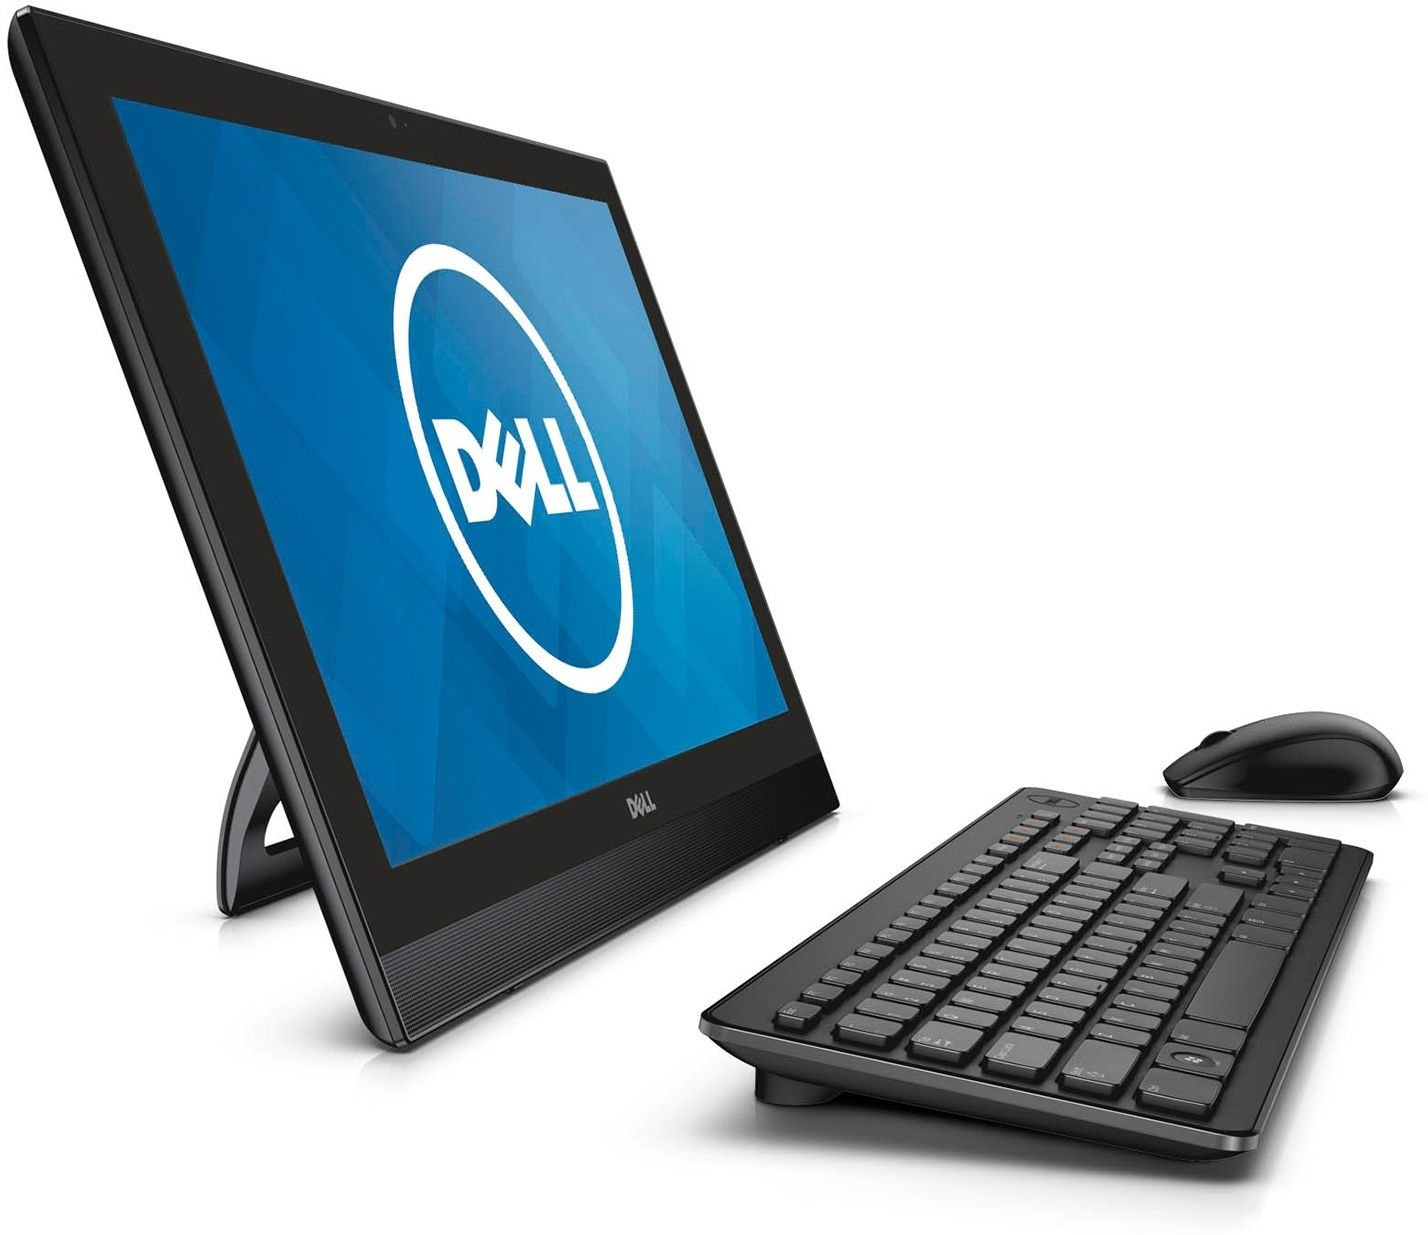 View Dell Inspiron 3043 All in one (Pentium Quad Core/ 2GB RAM/ 500GB HDD/ 19.5 Screen/ Win 8.1)